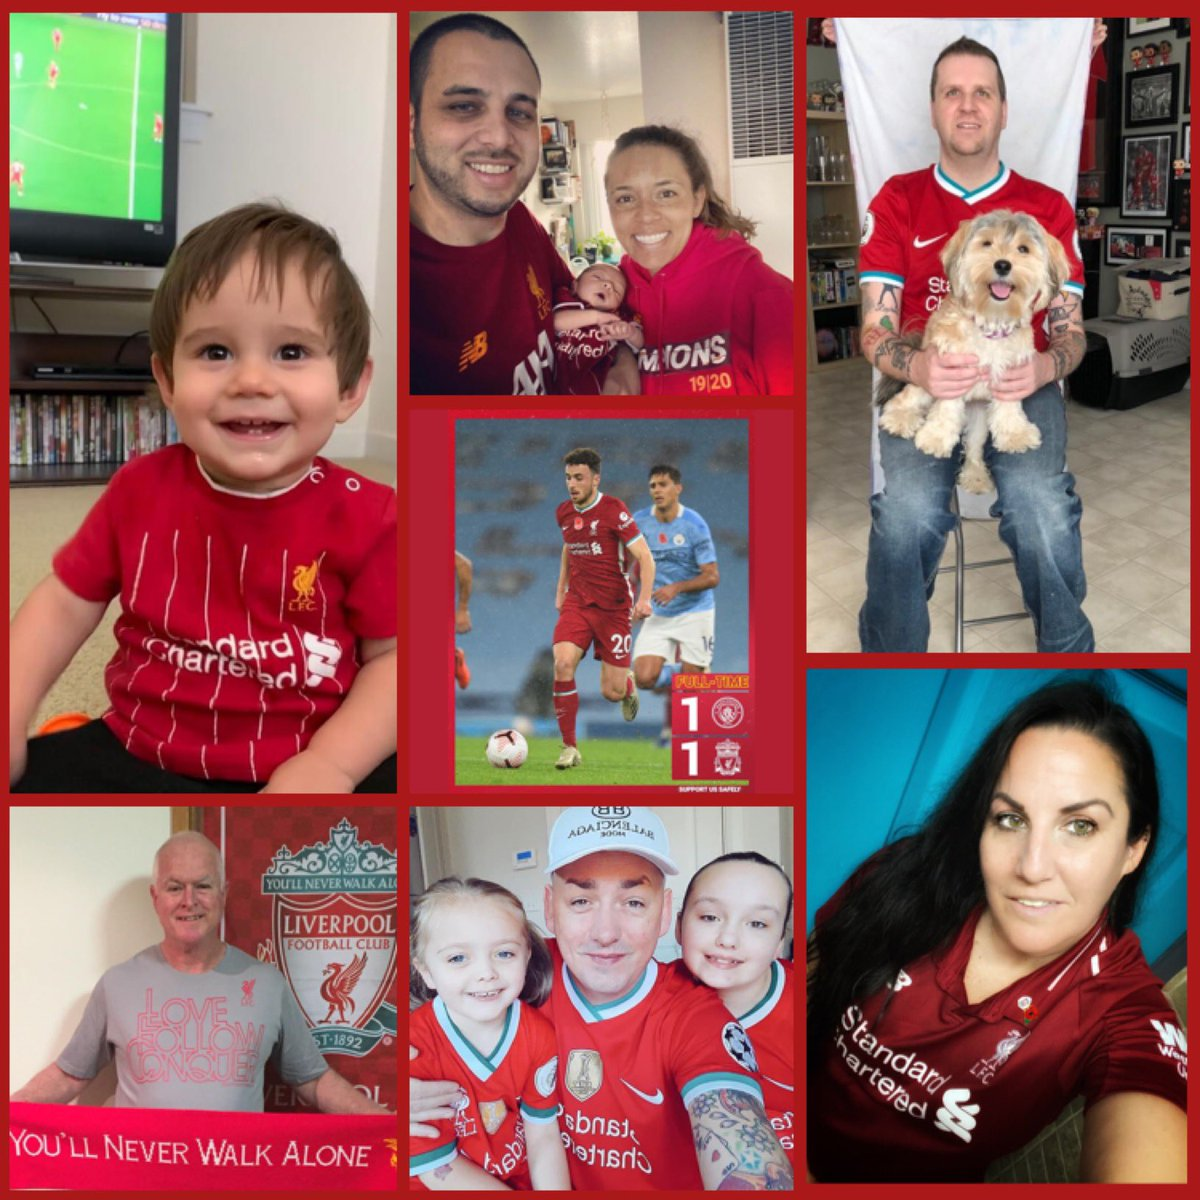 MatchDay8-Man City v @LFC  We'll take the point from a tough match tonight. We go again after the international break💪🏾🔴#YNWA #MCILIV @GWijnaldum #LFC #TheRedWay #StandRed #LFCFamily #weareliverpool #thismeansmore #LiverpoolFC #livergirls #LoveLFC #socalkopites #OLSC #OLSCFamily